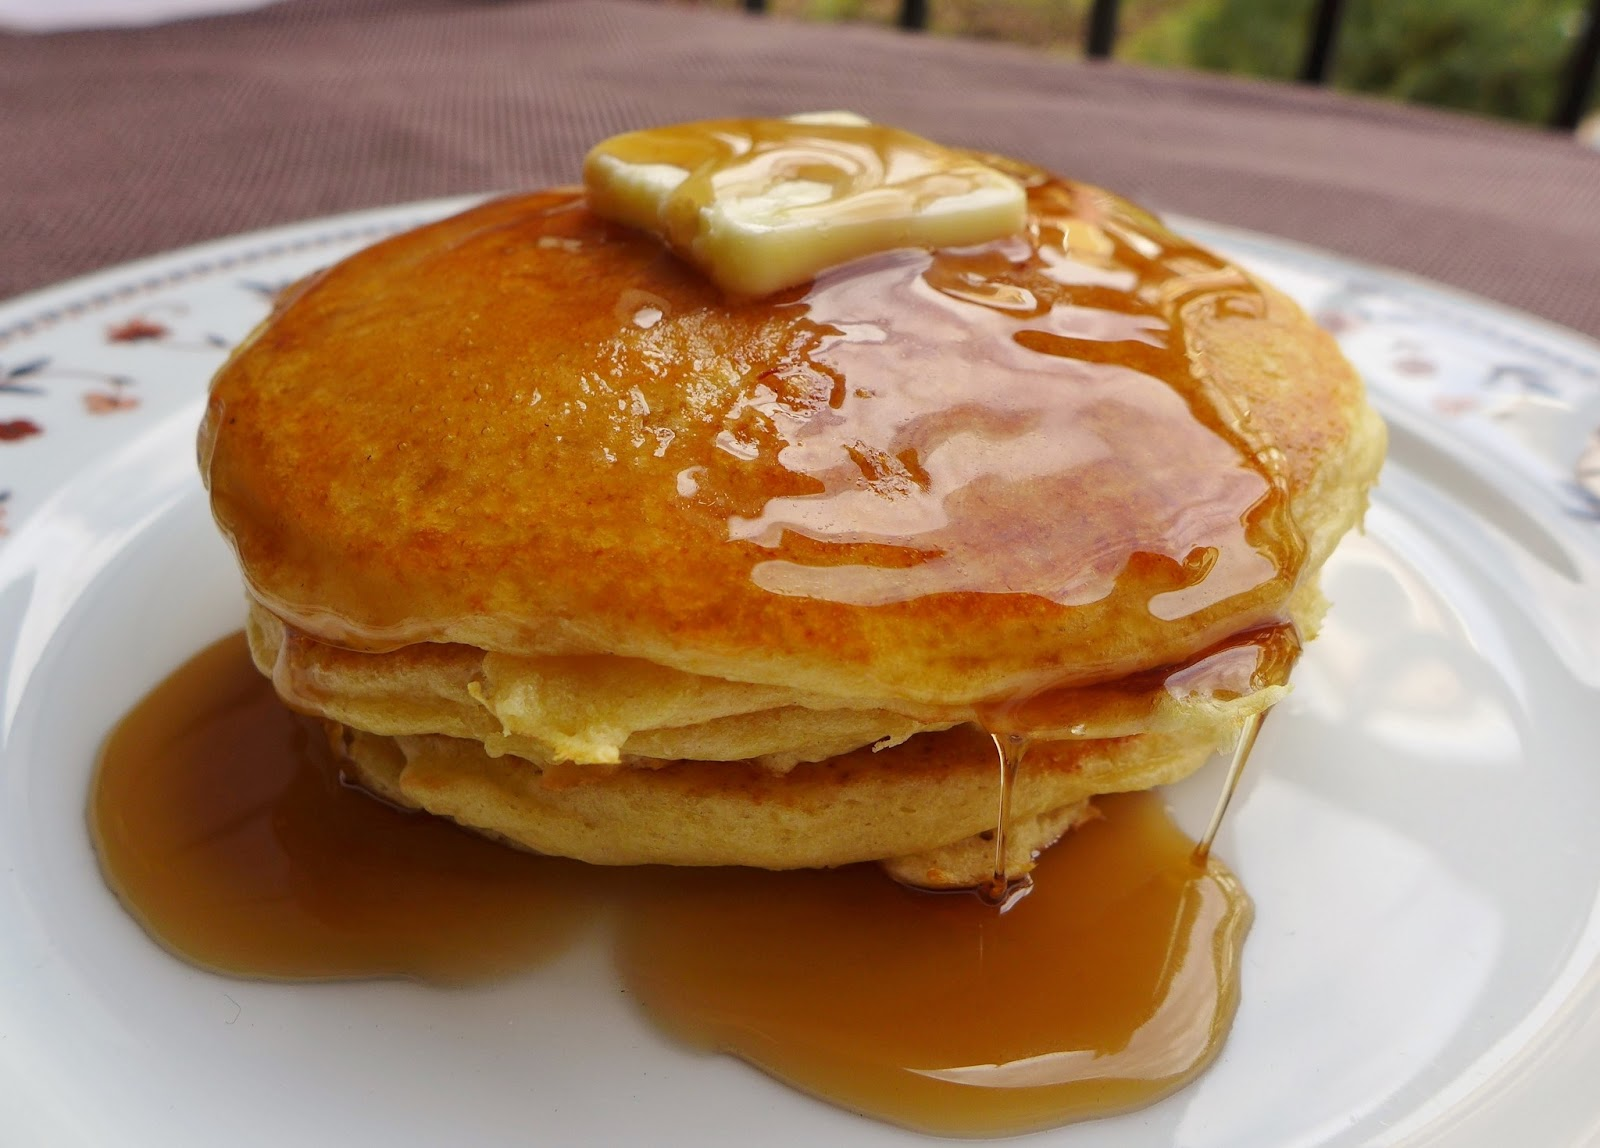 ... buttermilk pancakes best buttermilk pancakes buttermilk pancake